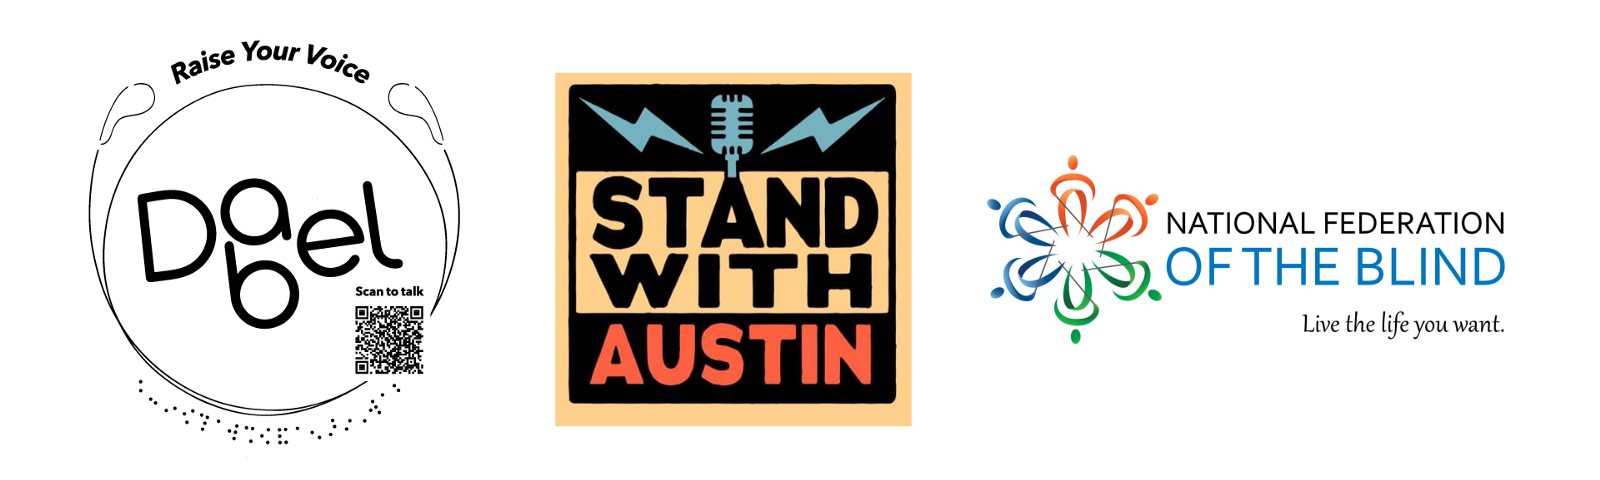 Dabel, Stand With Austin, and National Federation of Blind logos